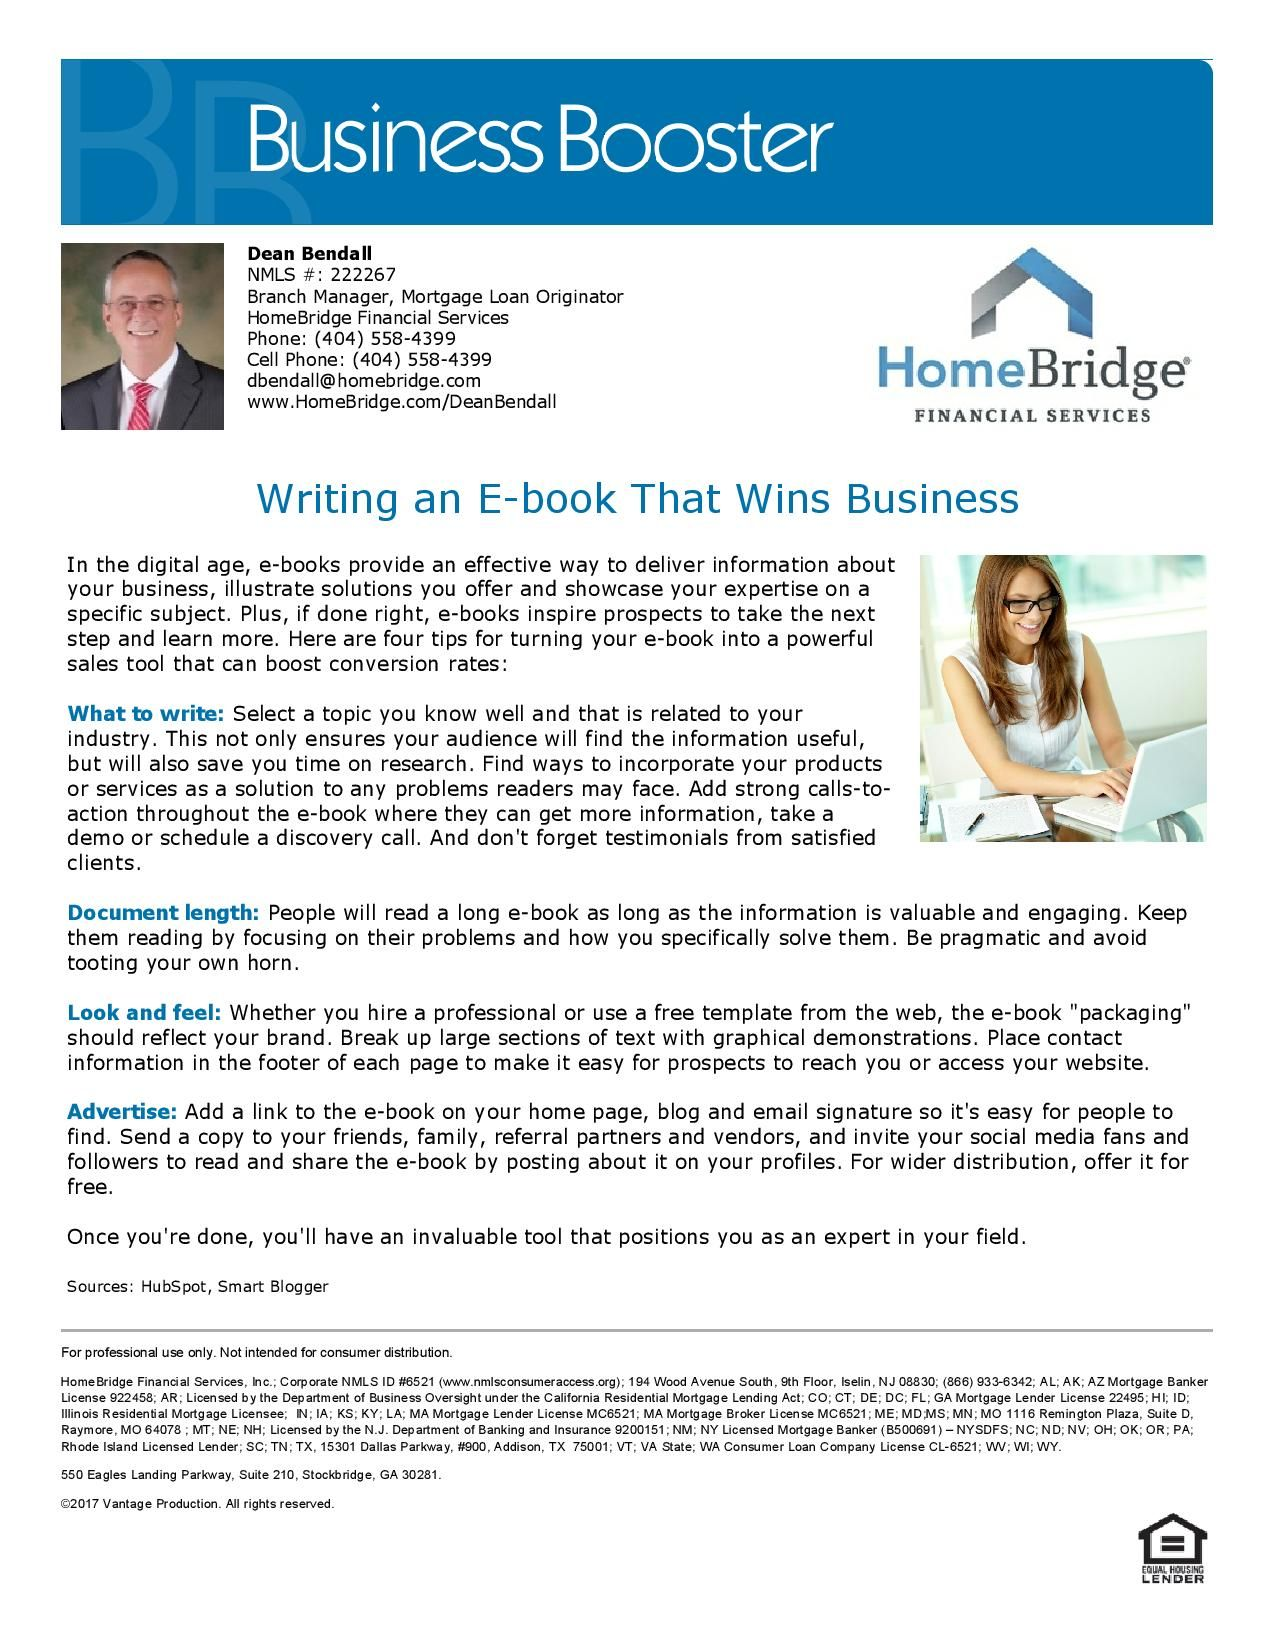 How To Write An EBook That Wins Business Dean Bendall Mortgage